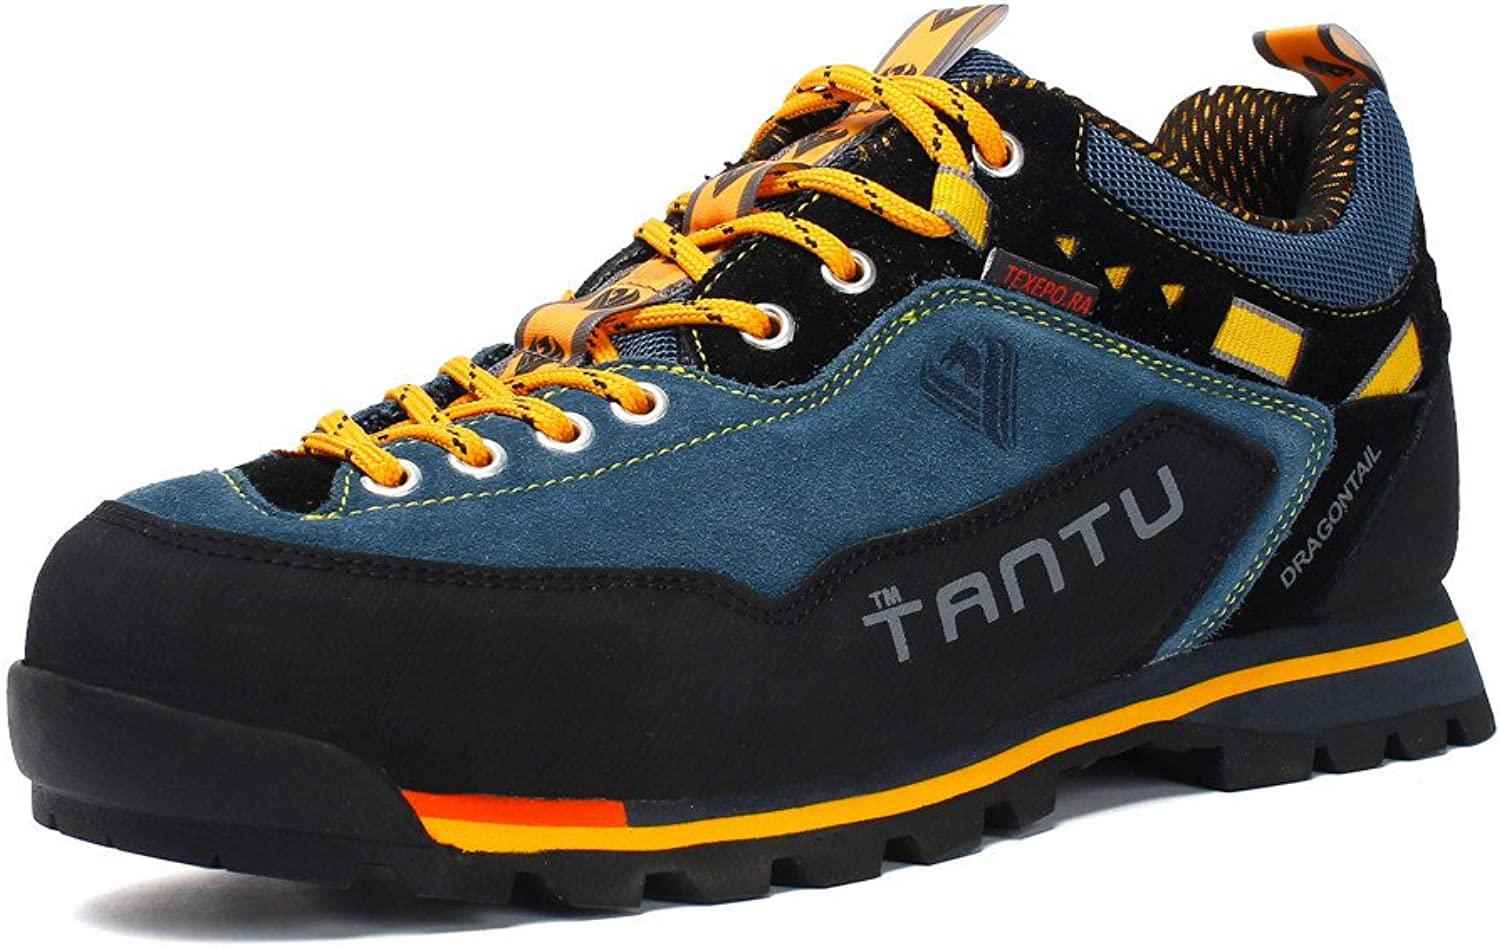 Autumn Winter Outdoor shoes,Men's Waterproof Hiking shoes,Suede Leather Breathable Lightweight Walking shoes